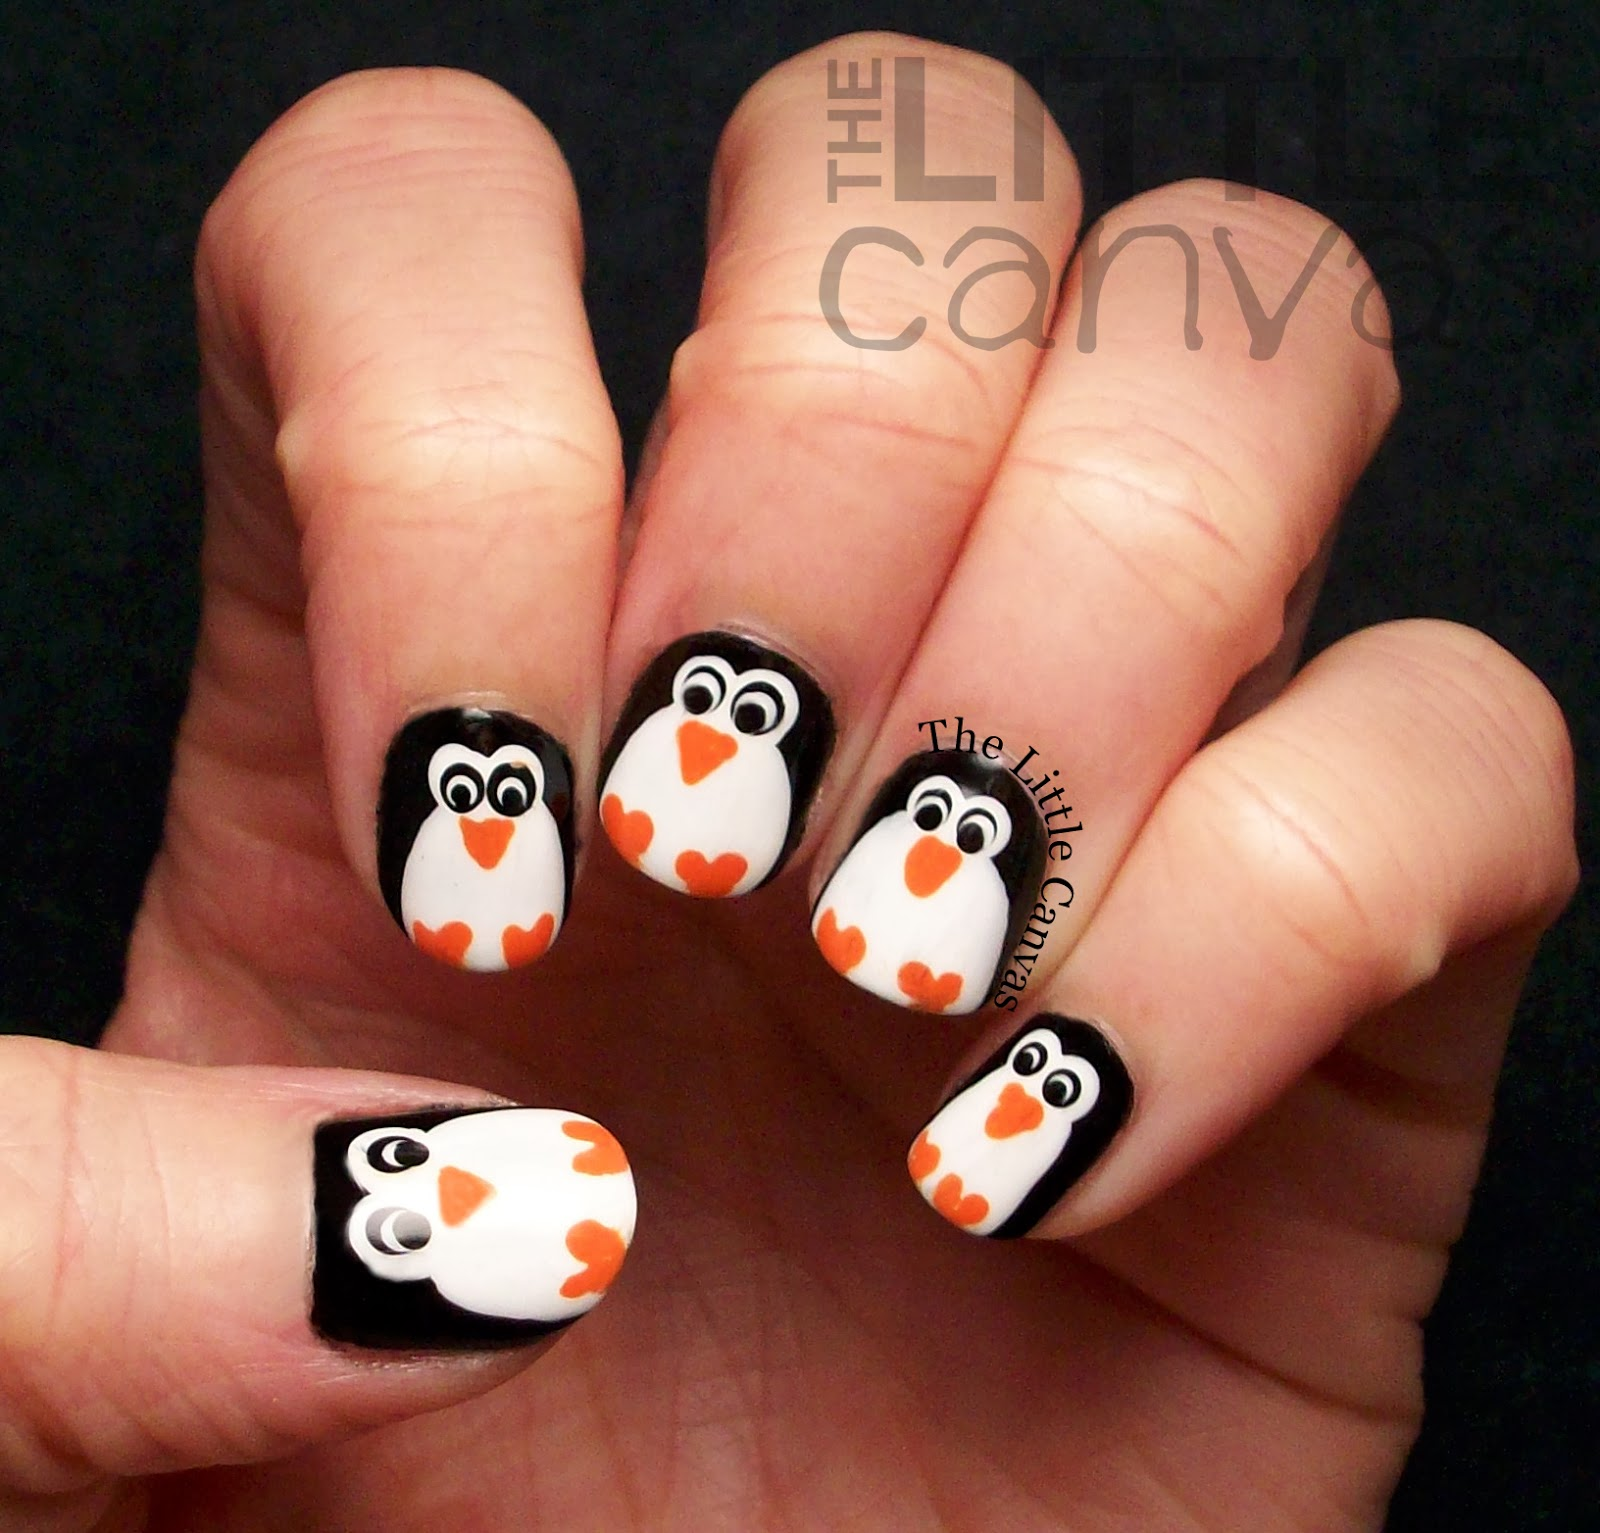 Let S Talk Nail Art: The Little Canvas